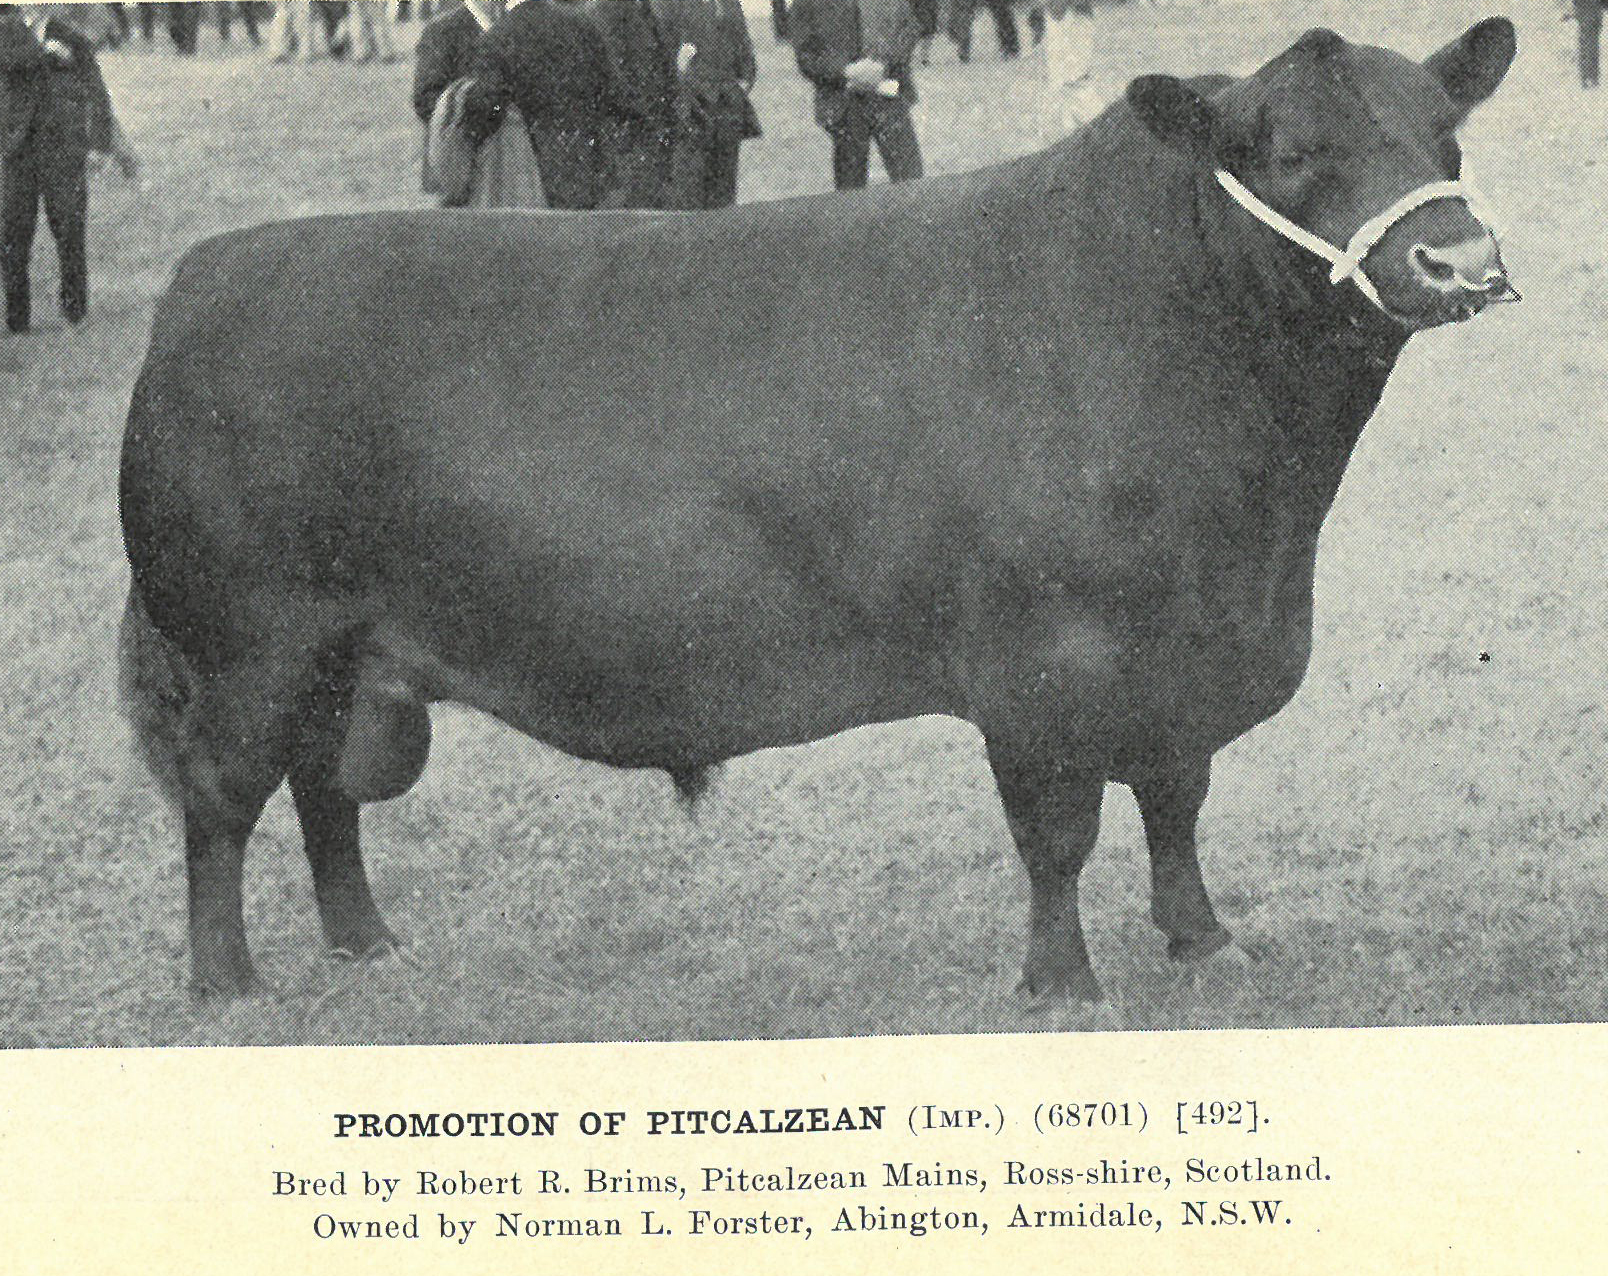 Promotion of Pitcalzean